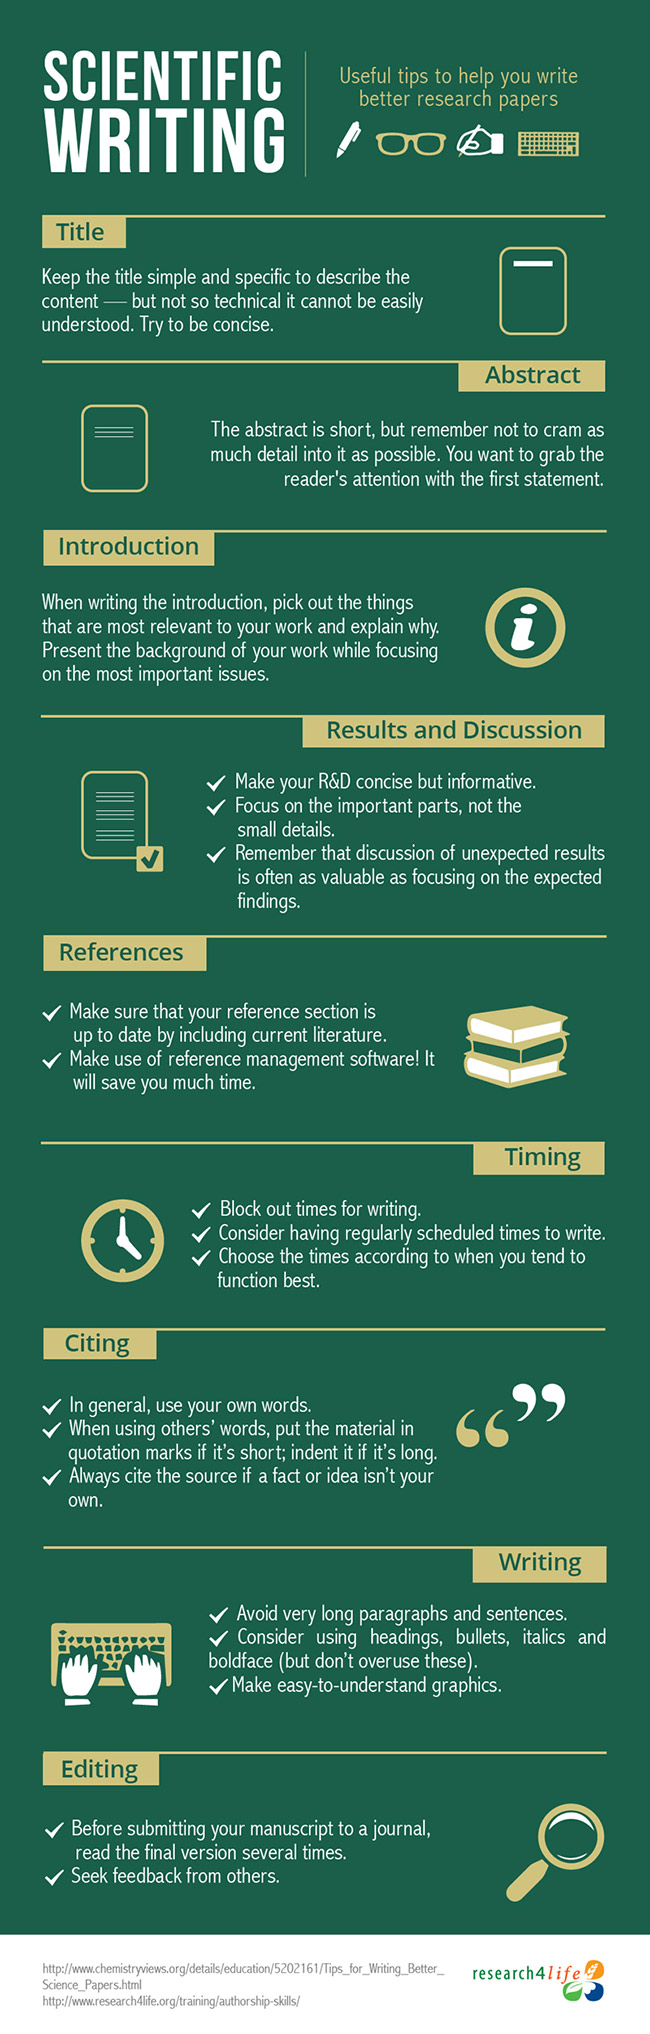 lance academic writer lance writing jobs at uvocorp com  infographic how to write better science papers infographic tips for writing better science papers